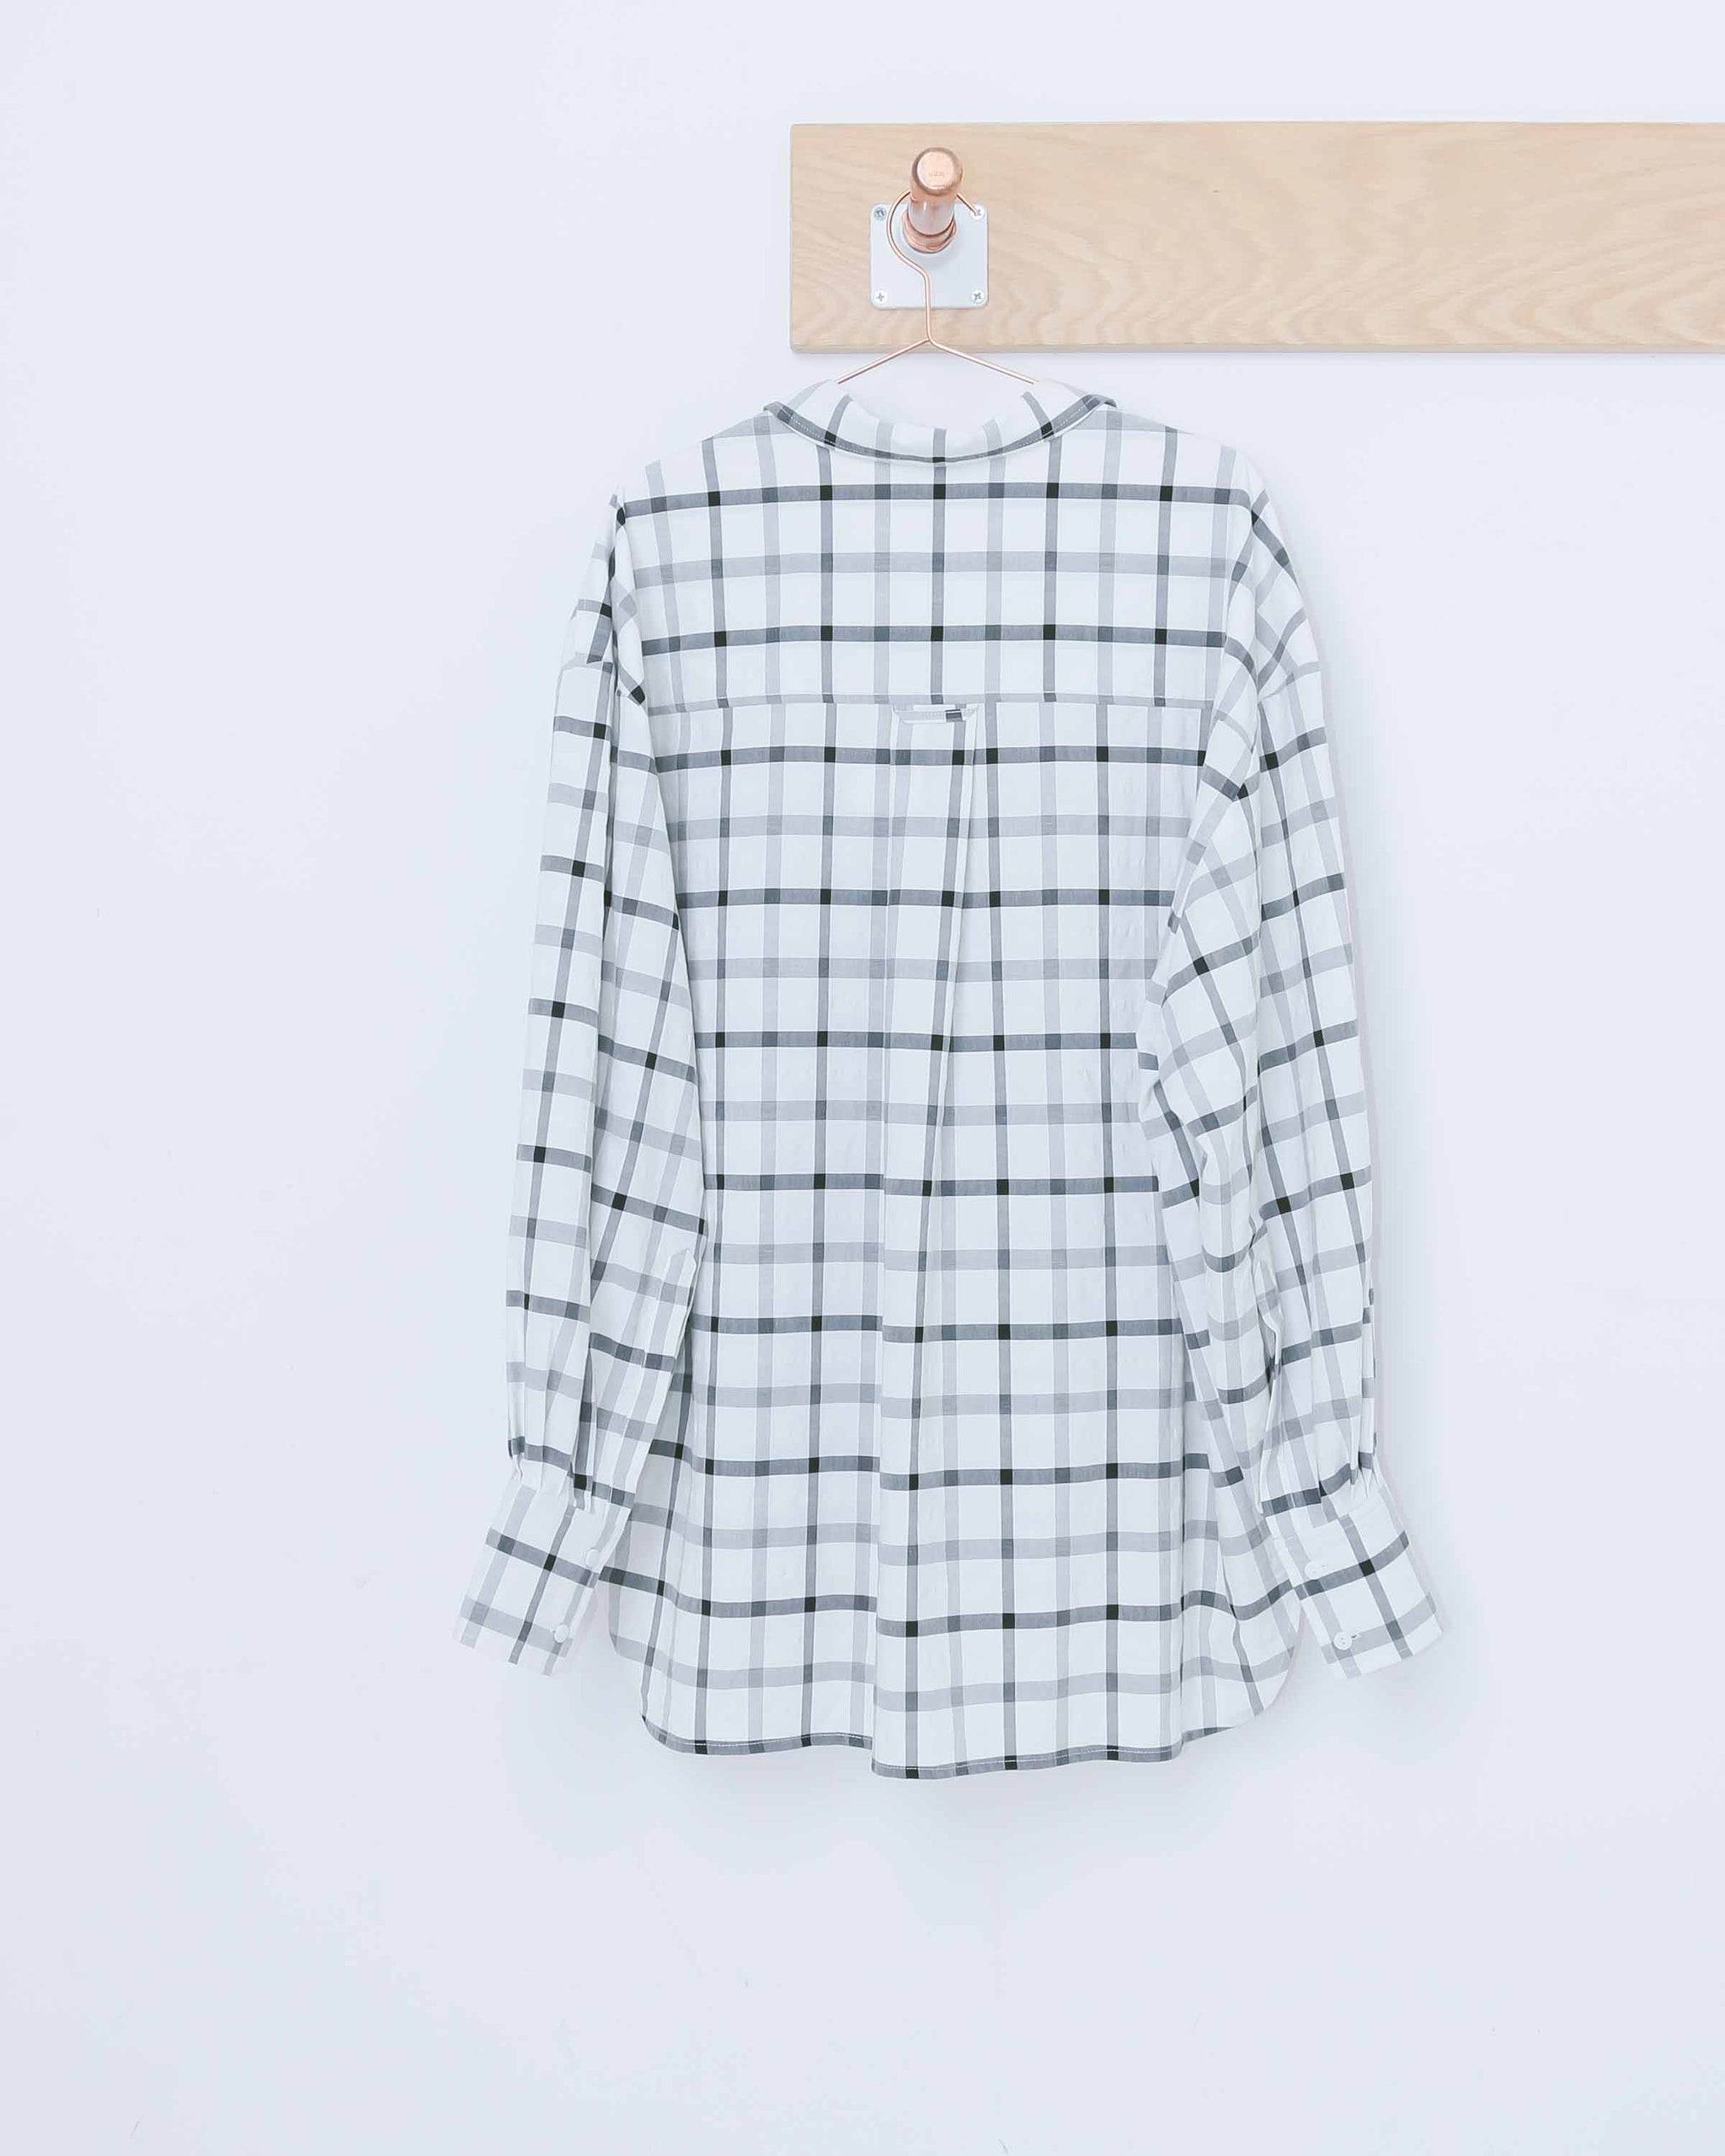 Cream & Black Oversized Plaid Shirt